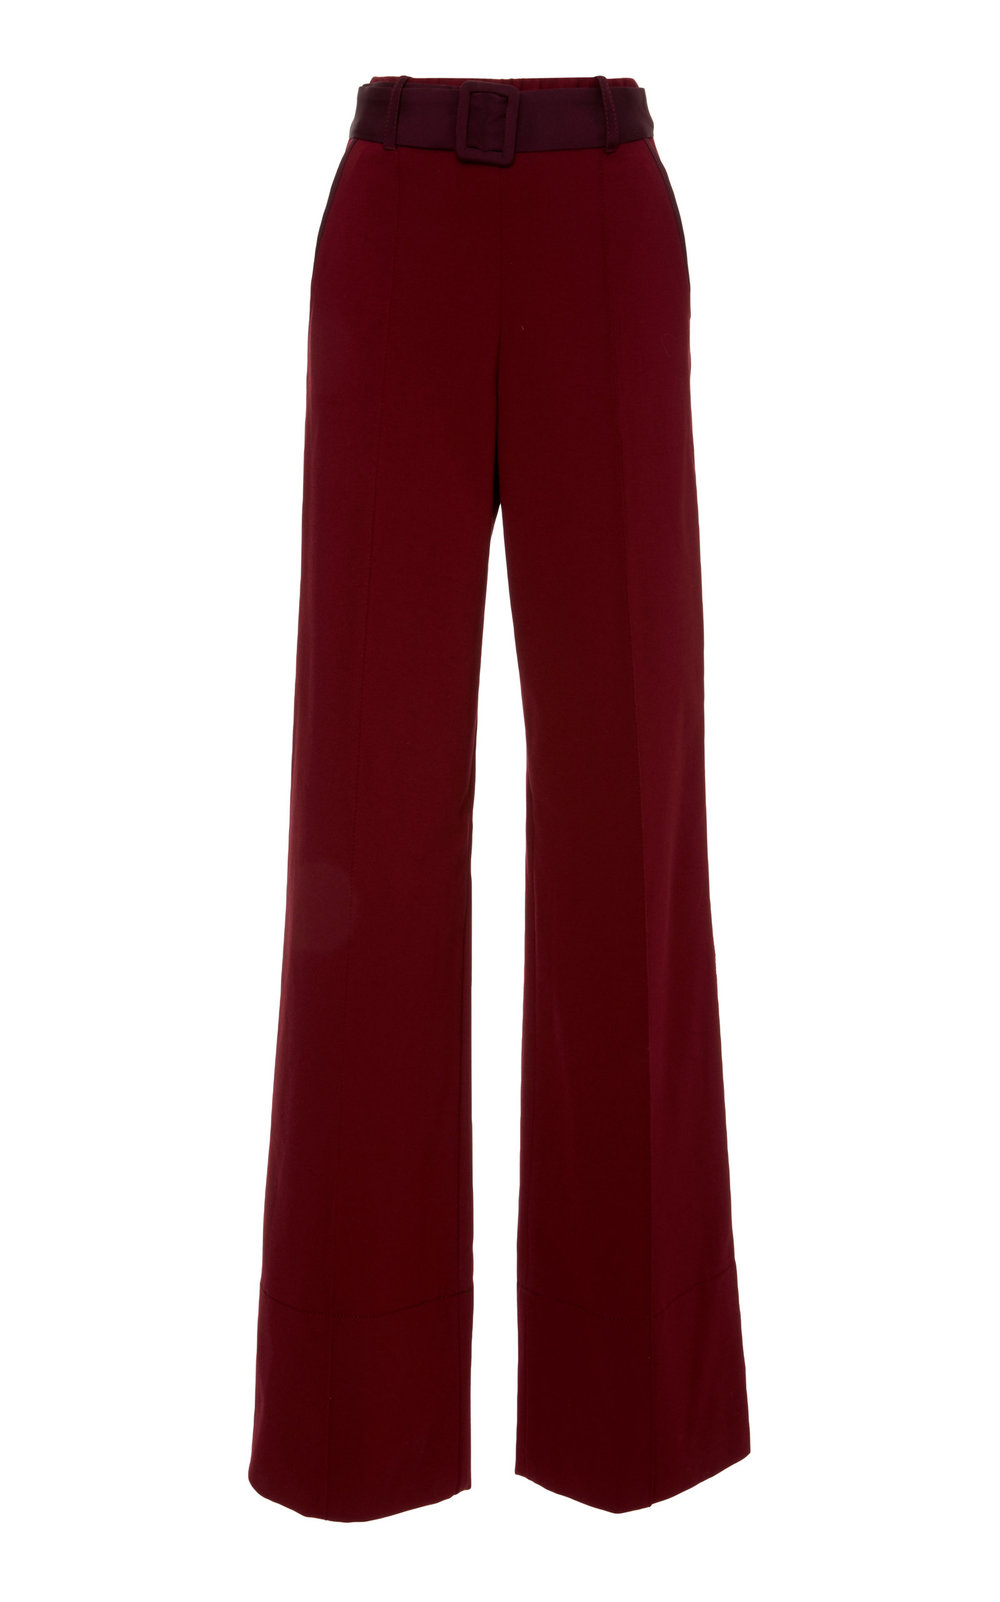 Matthiola Jersey Pants - BURGUNDY  Sharply cut in a wide leg silhouette, these classic pants feature a high waistline and fly closure. The belted design features a central front cut, providing a contemporary tailored feel. Wear yours with a jacket or as a sharp separate.